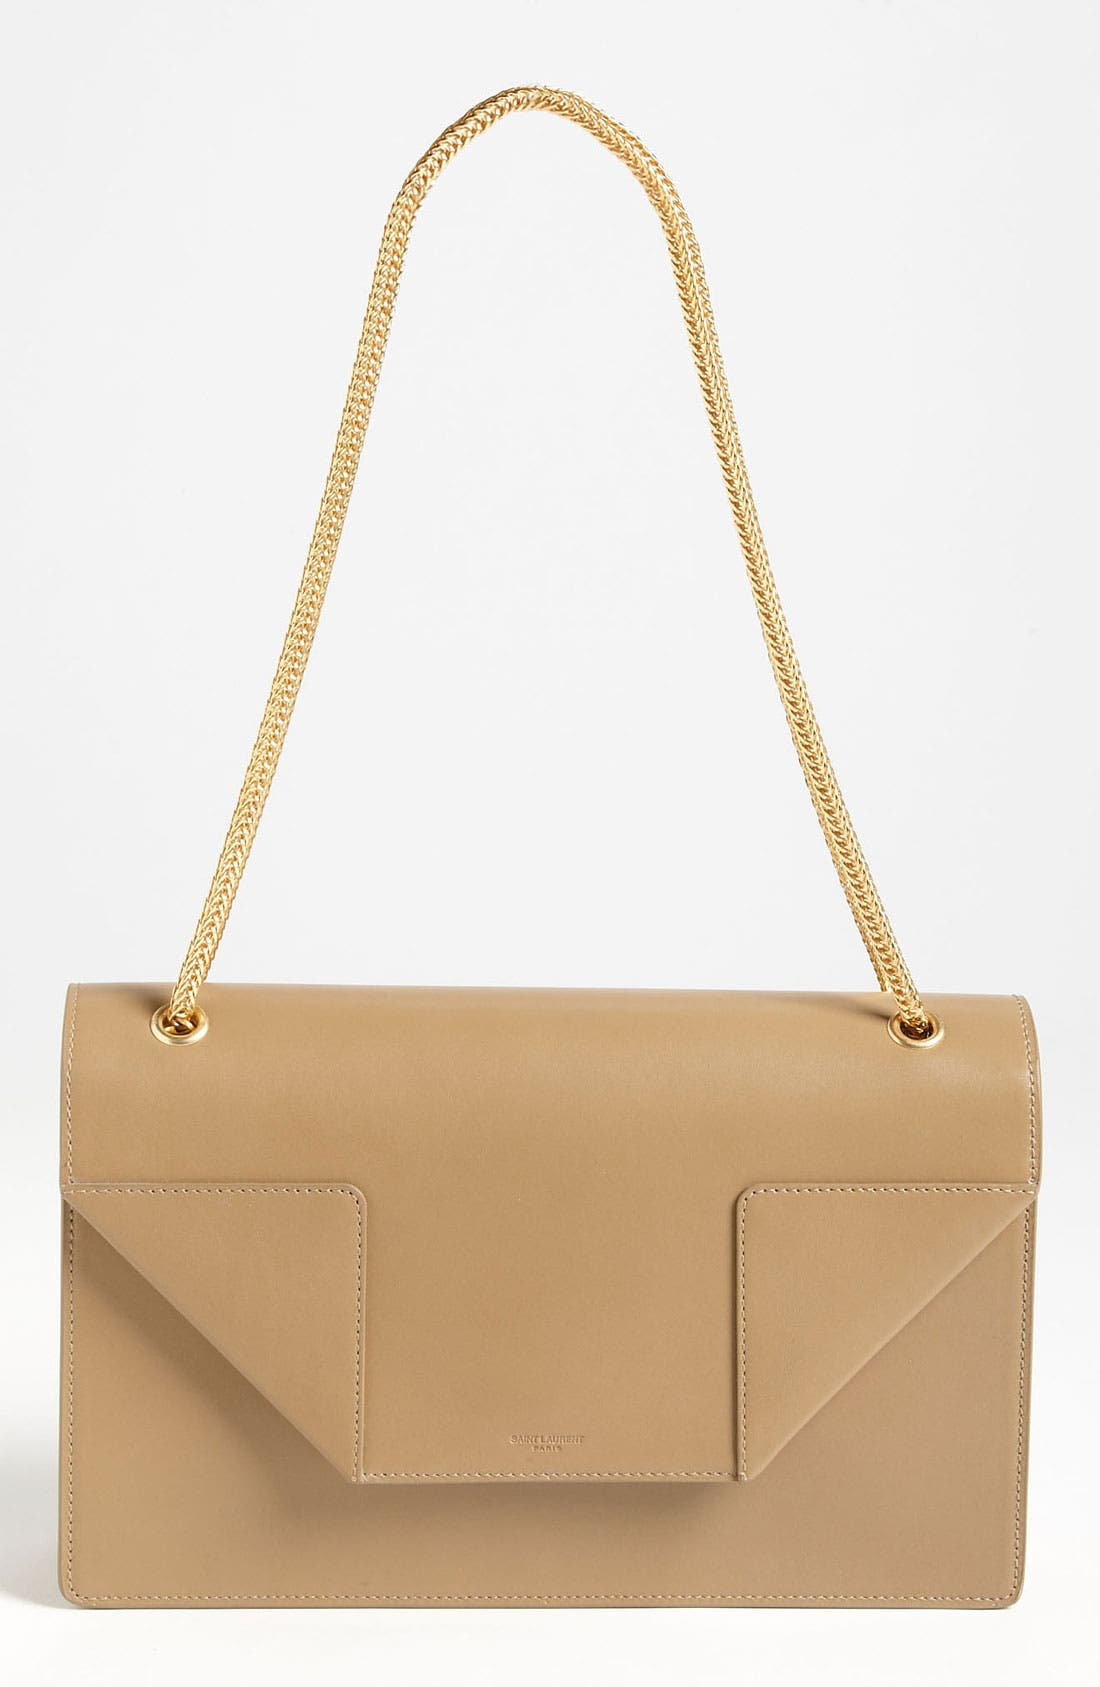 Alternate Image 1 Selected - Saint Laurent 'Betty - Medium' Leather Shoulder Bag